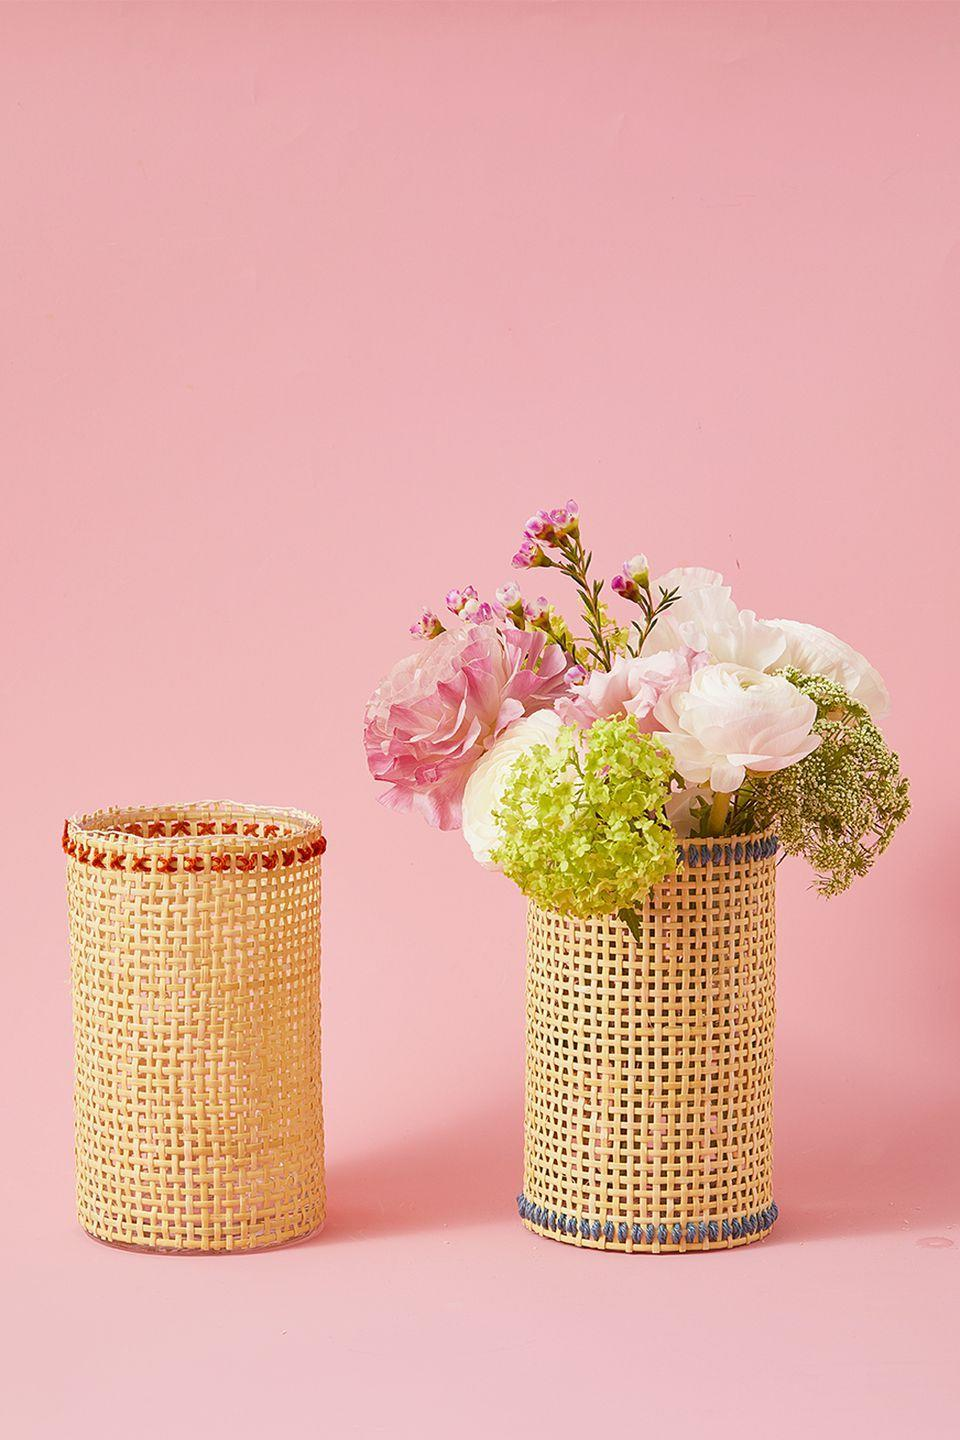 """<p>These vases are perfect for every spring bouquet. Cut a piece of cane webbing to fit around a glass hurricane vase. Thread a needle with contrasting yarn or embroidery thread and stitch a line or criss cross pattern along the edges of the cane webbing. Wrap the webbing around the vase and adhere with hot glue.</p><p><strong>RELATED:</strong> <a href=""""https://www.goodhousekeeping.com/holidays/easter-ideas/g1906/easter-flowers/"""" rel=""""nofollow noopener"""" target=""""_blank"""" data-ylk=""""slk:23 So-Pretty Easter Flowers and Centerpieces"""" class=""""link rapid-noclick-resp"""">23 So-Pretty Easter Flowers and Centerpieces</a></p>"""